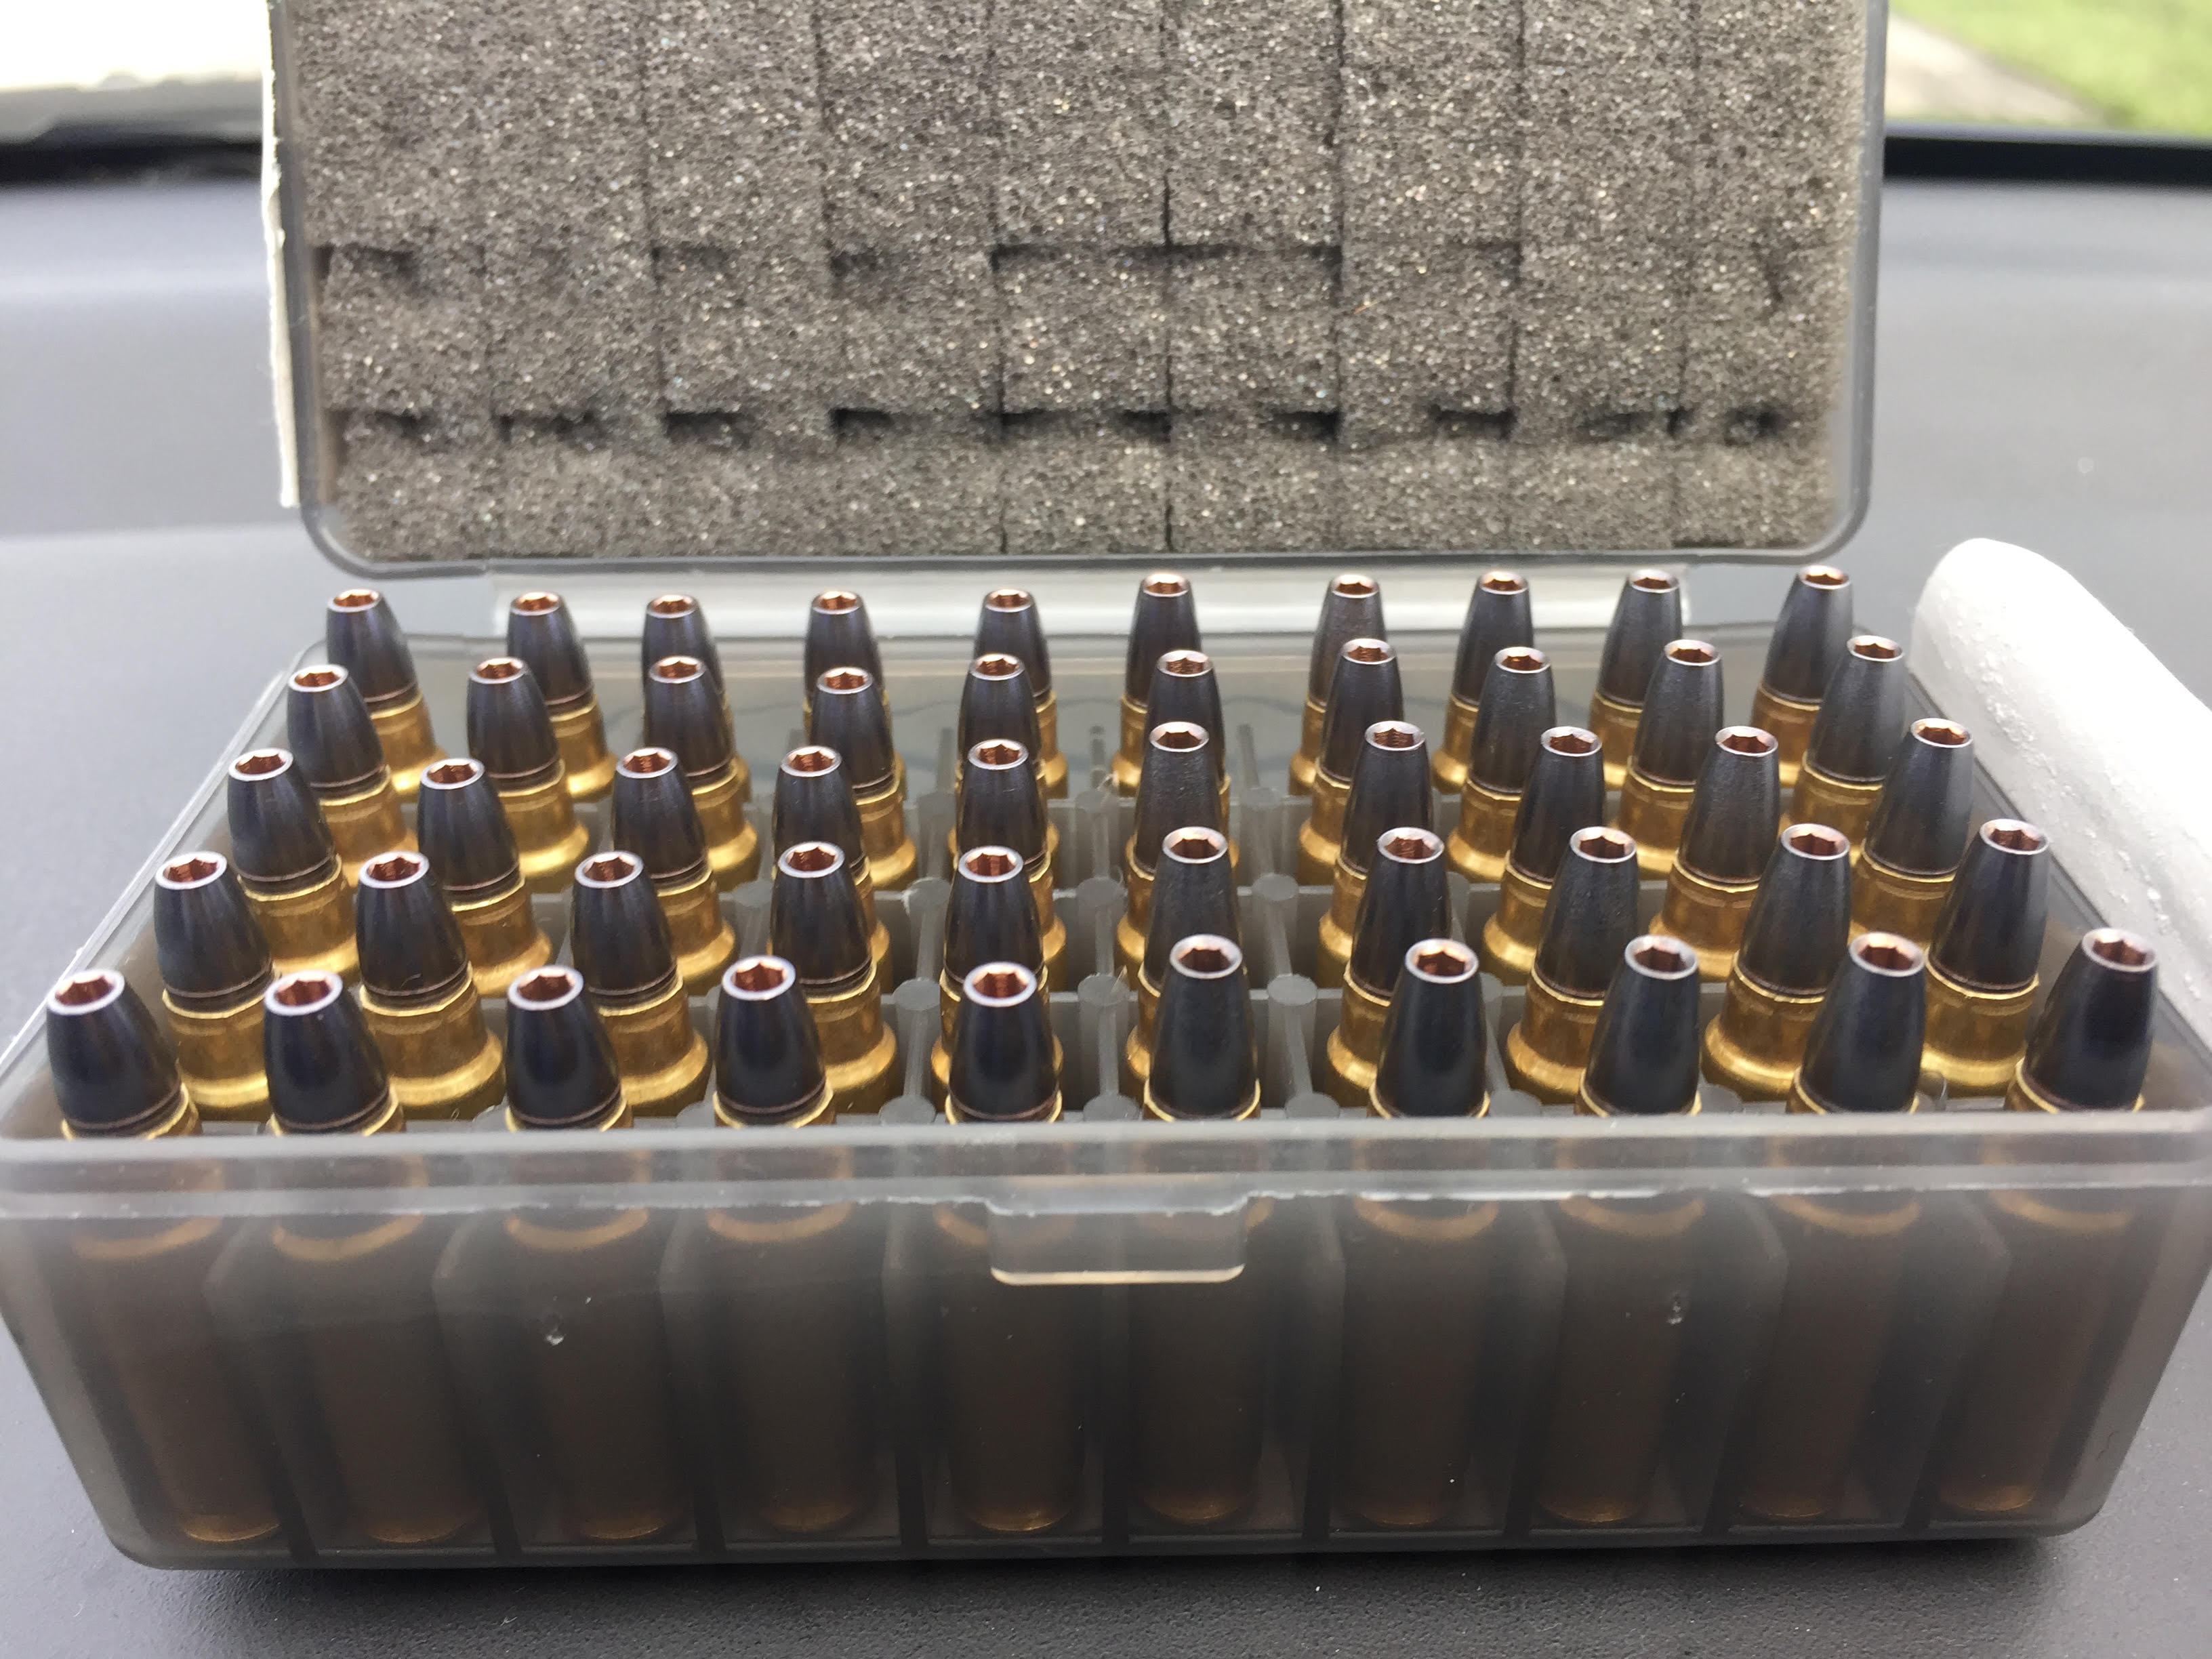 5.7×28 defense ammo